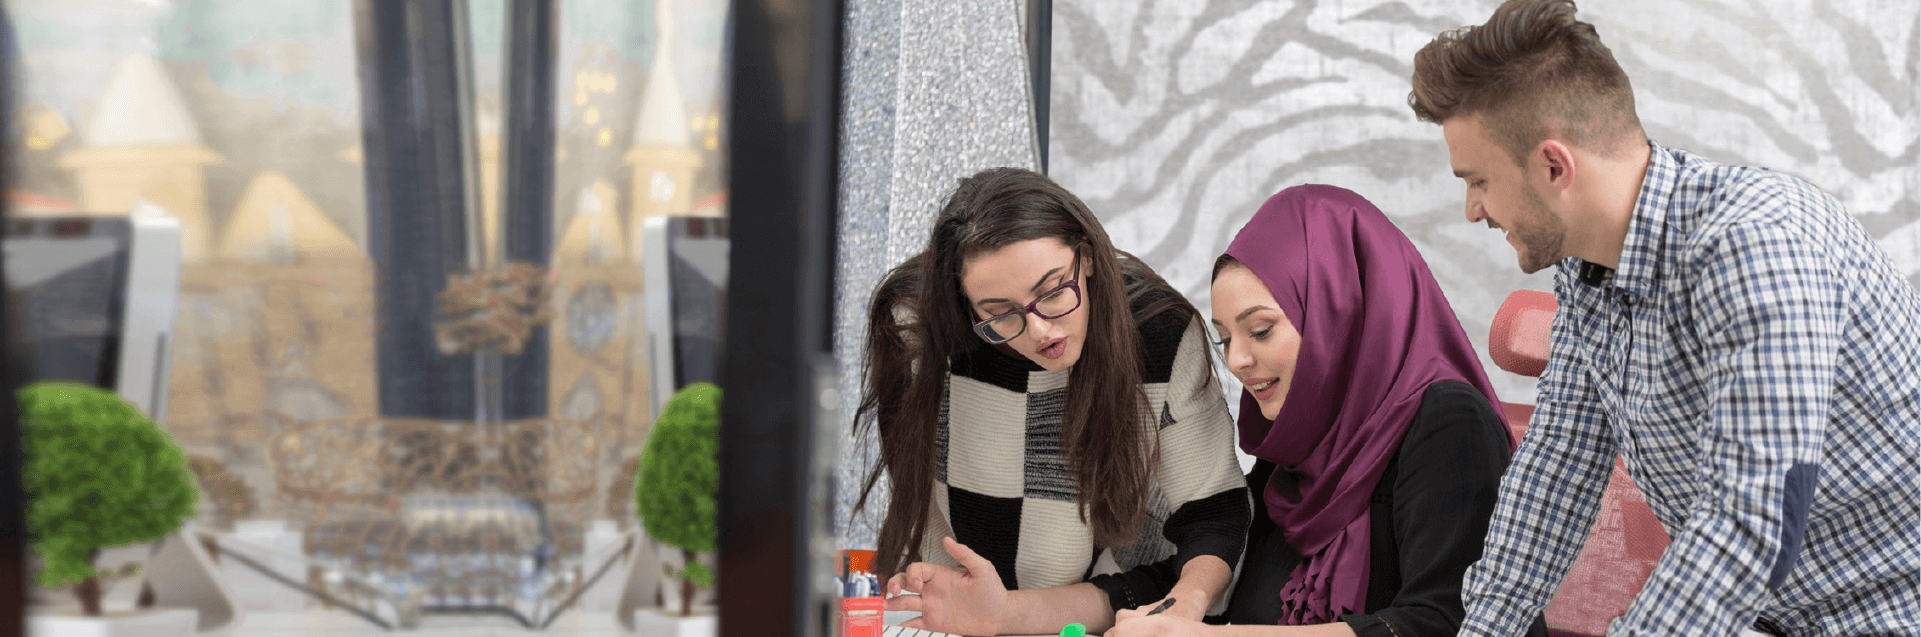 Wipro Middle East Careers Job Opportunities In Middle East